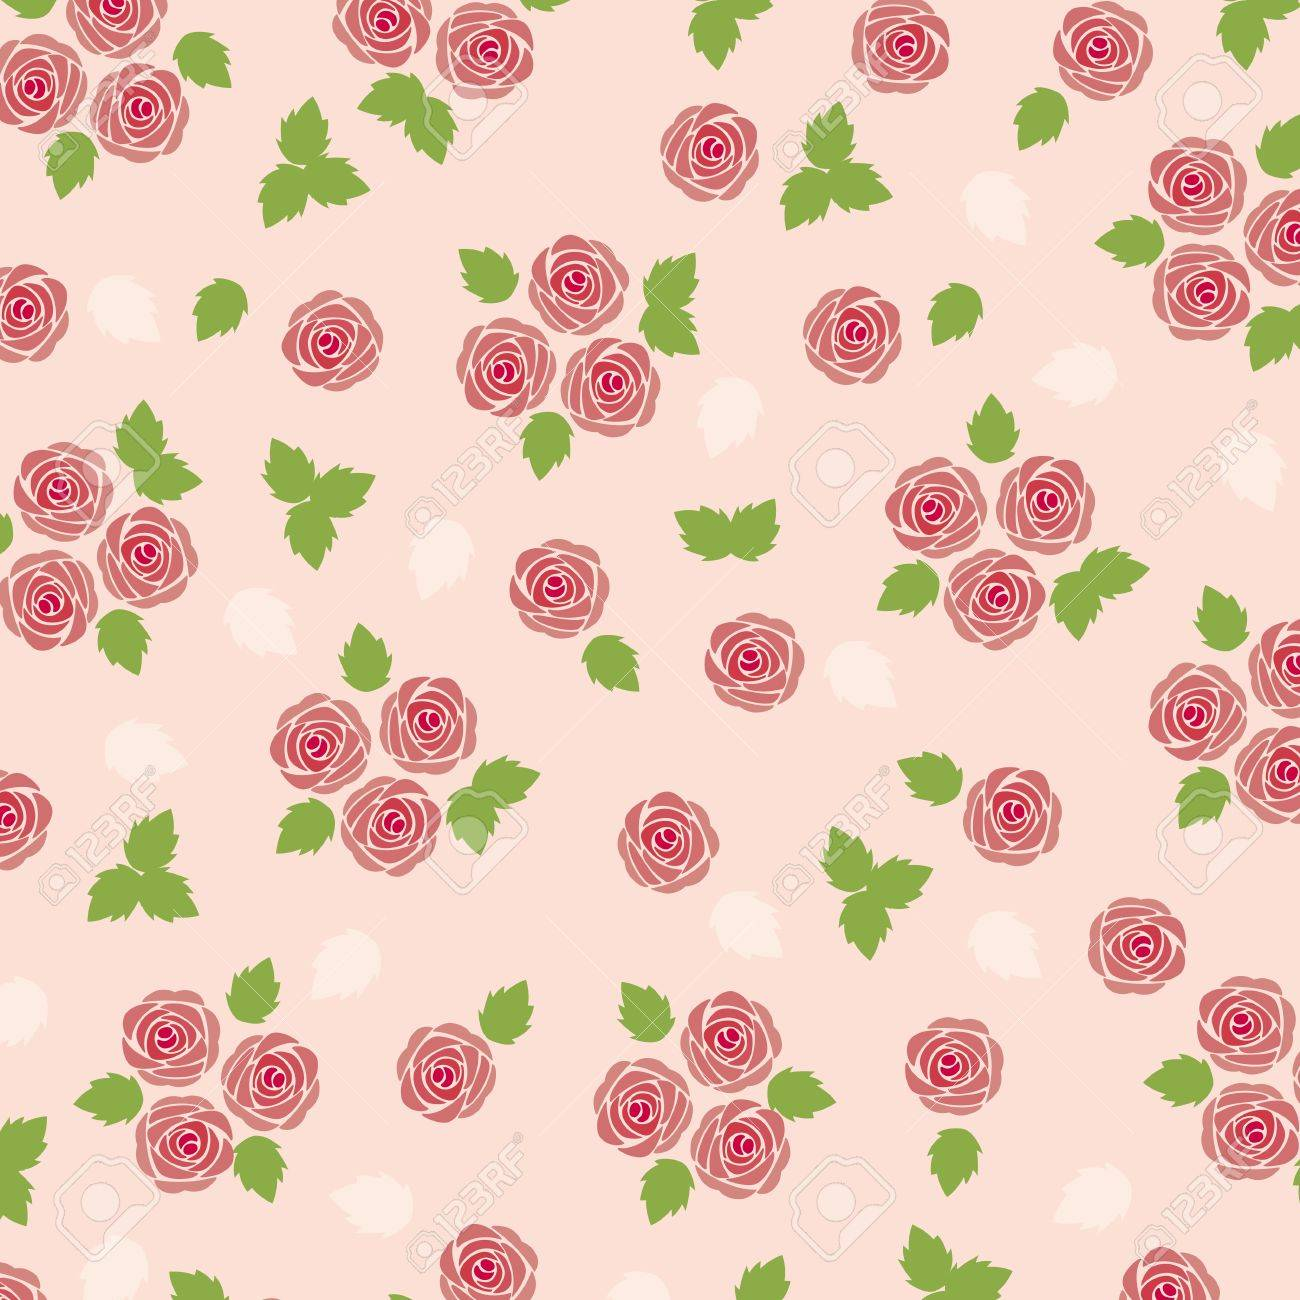 rose background Stock Vector - 12054469